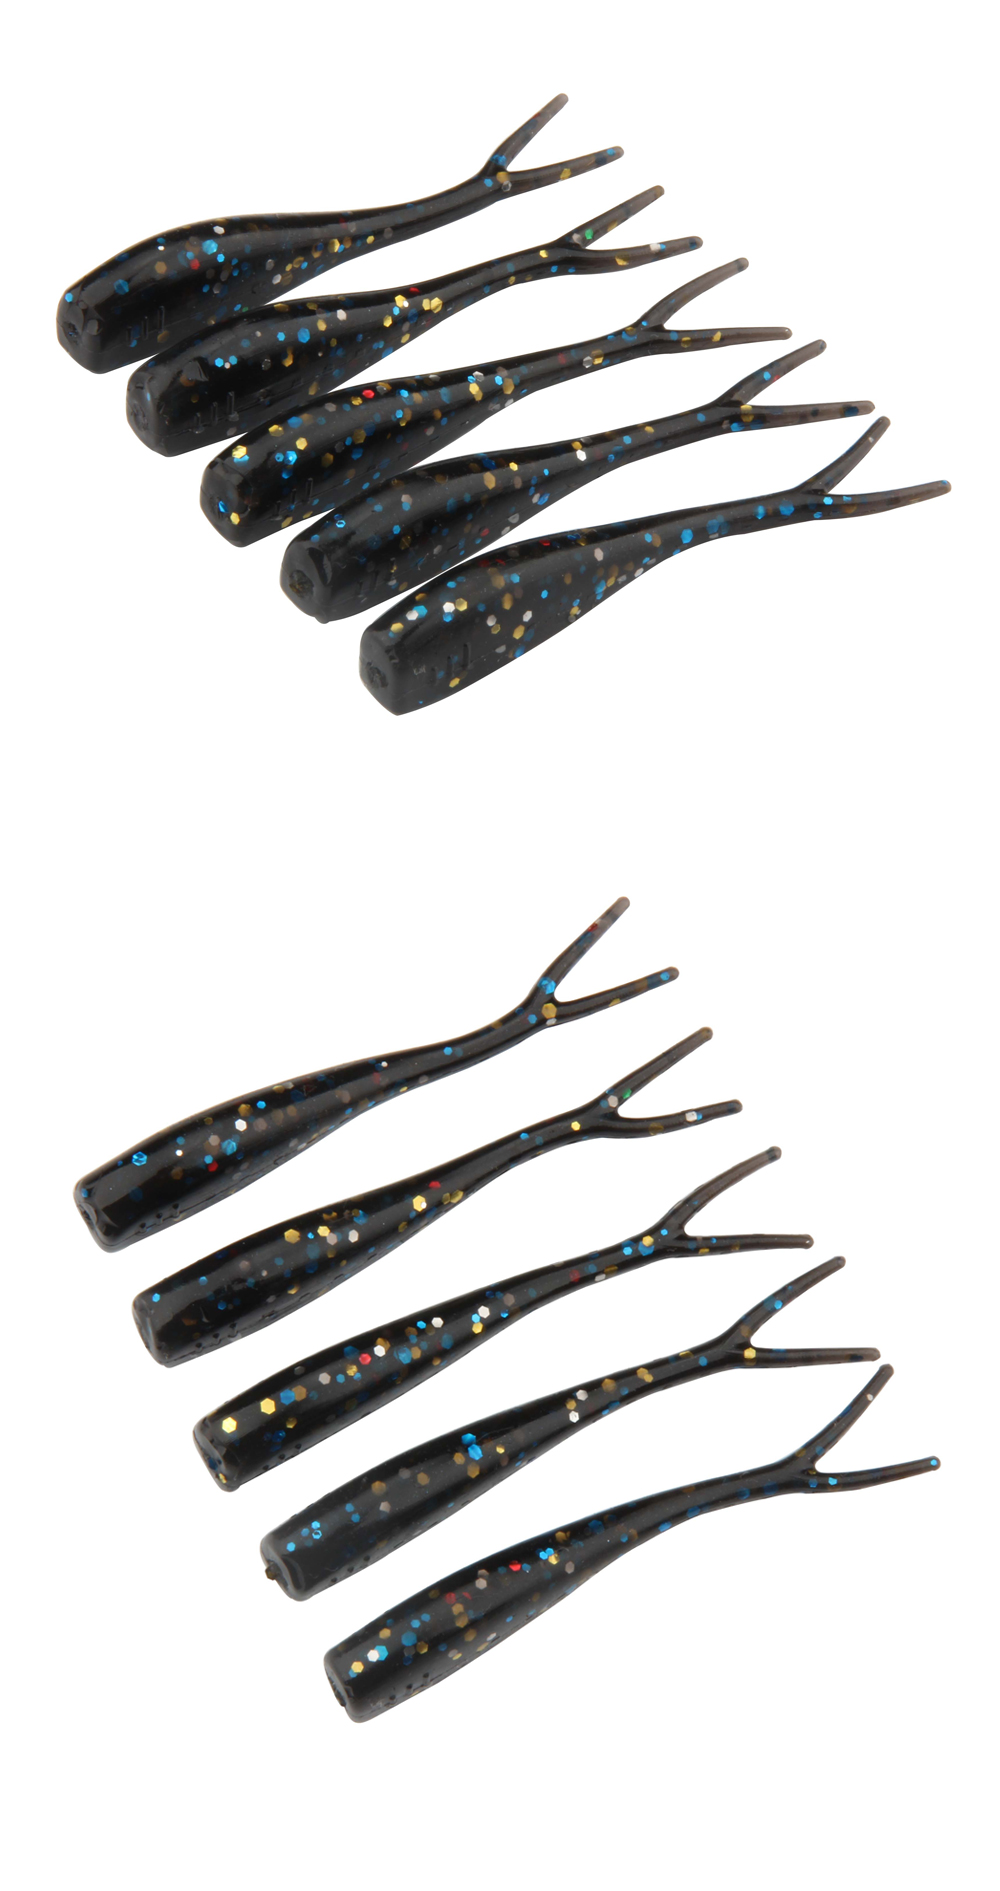 5cm 1g Mini Lures Soft Bait Fishing Worms 4colors OEM Acceptable Soft Fishing Lure Swimbaits Split Double Tail Shad-12 Per Bag (10)